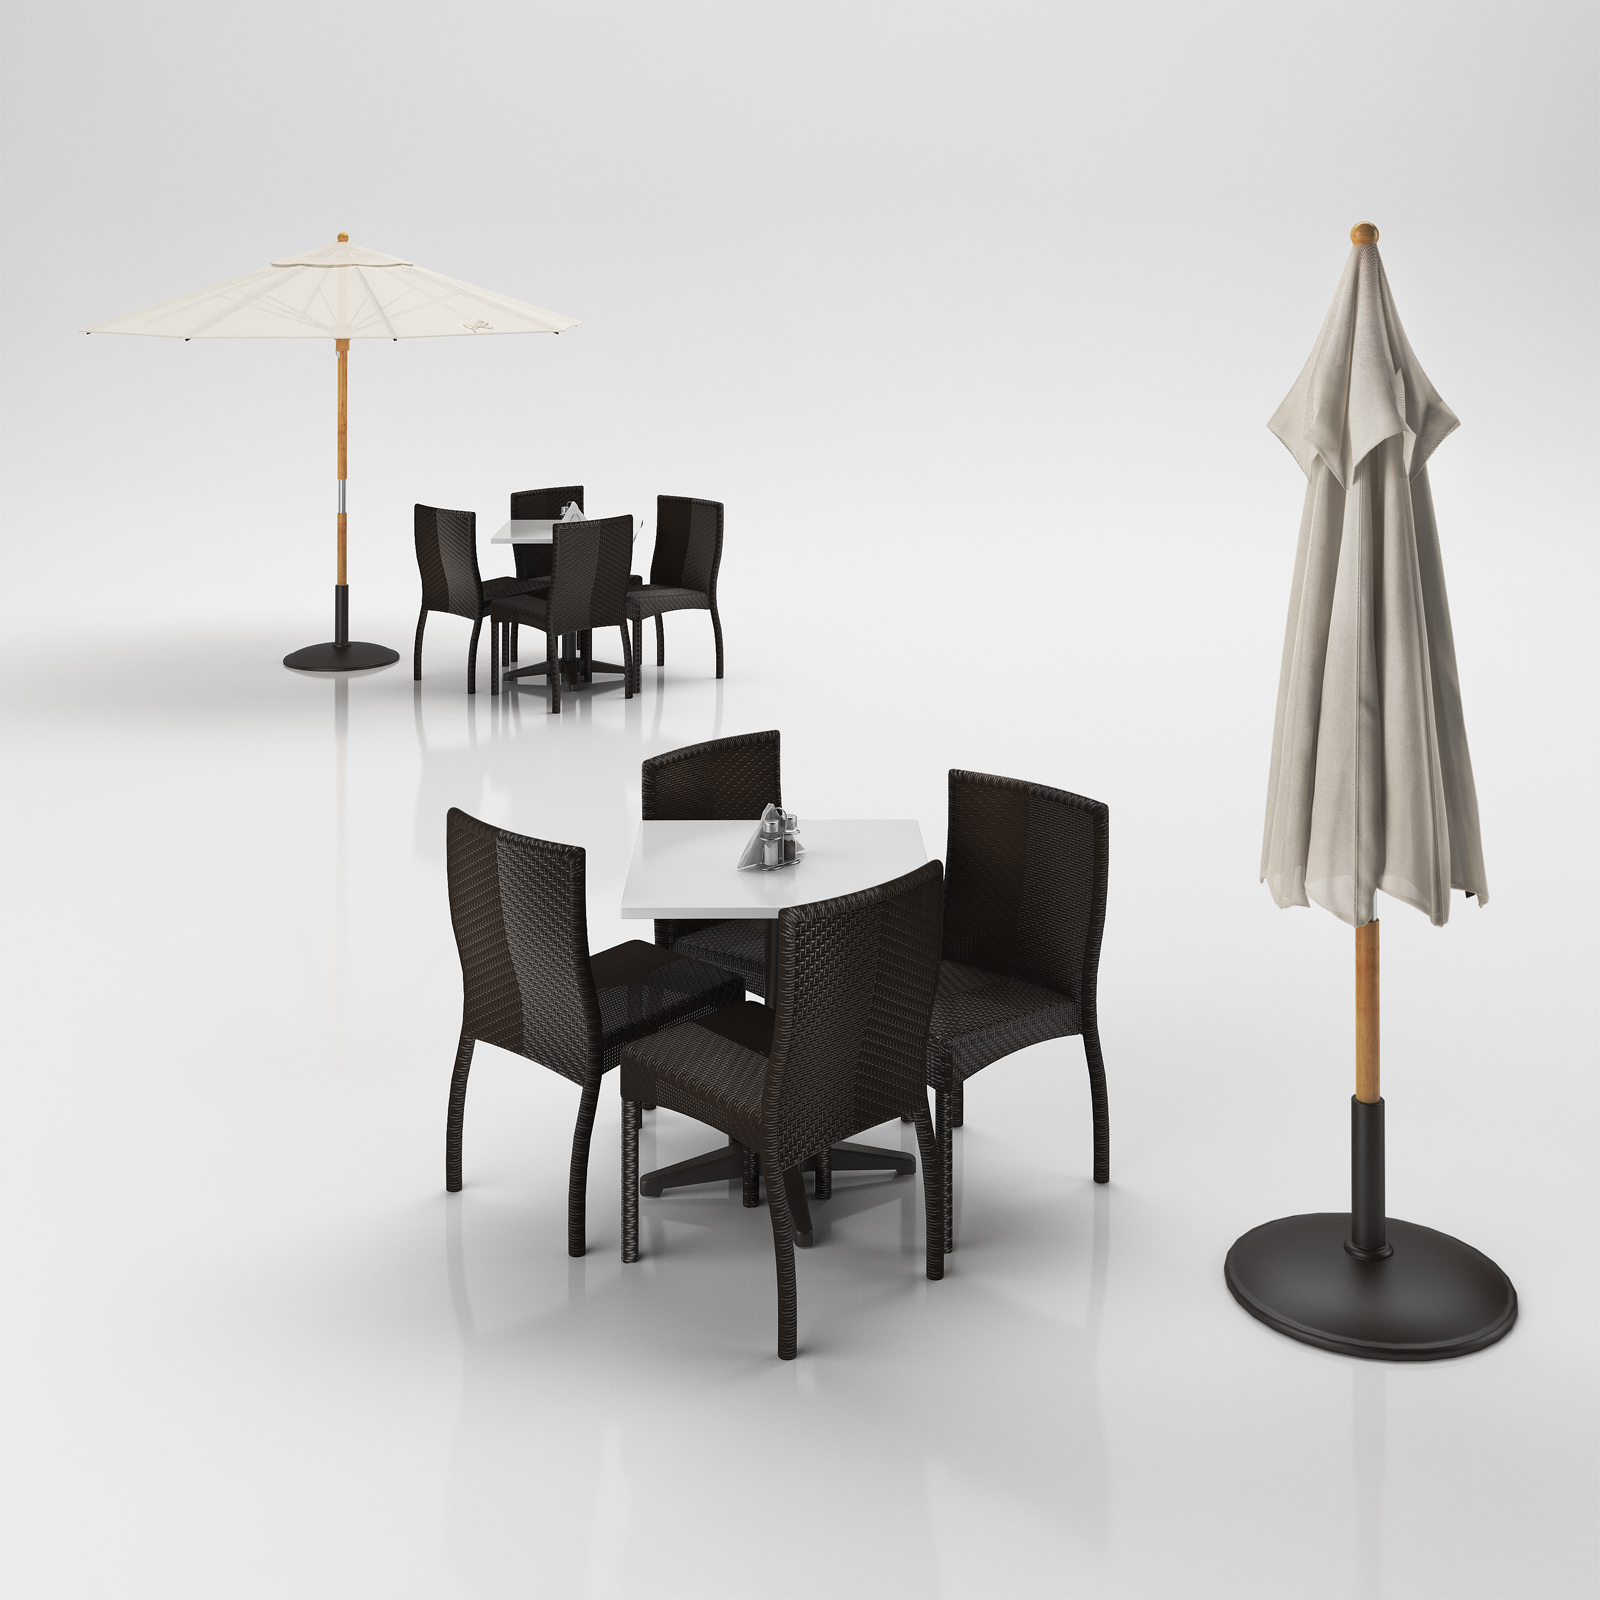 Rattan Table Rattan Chairs Set With Table And Outdoor Umbrella 3d Model